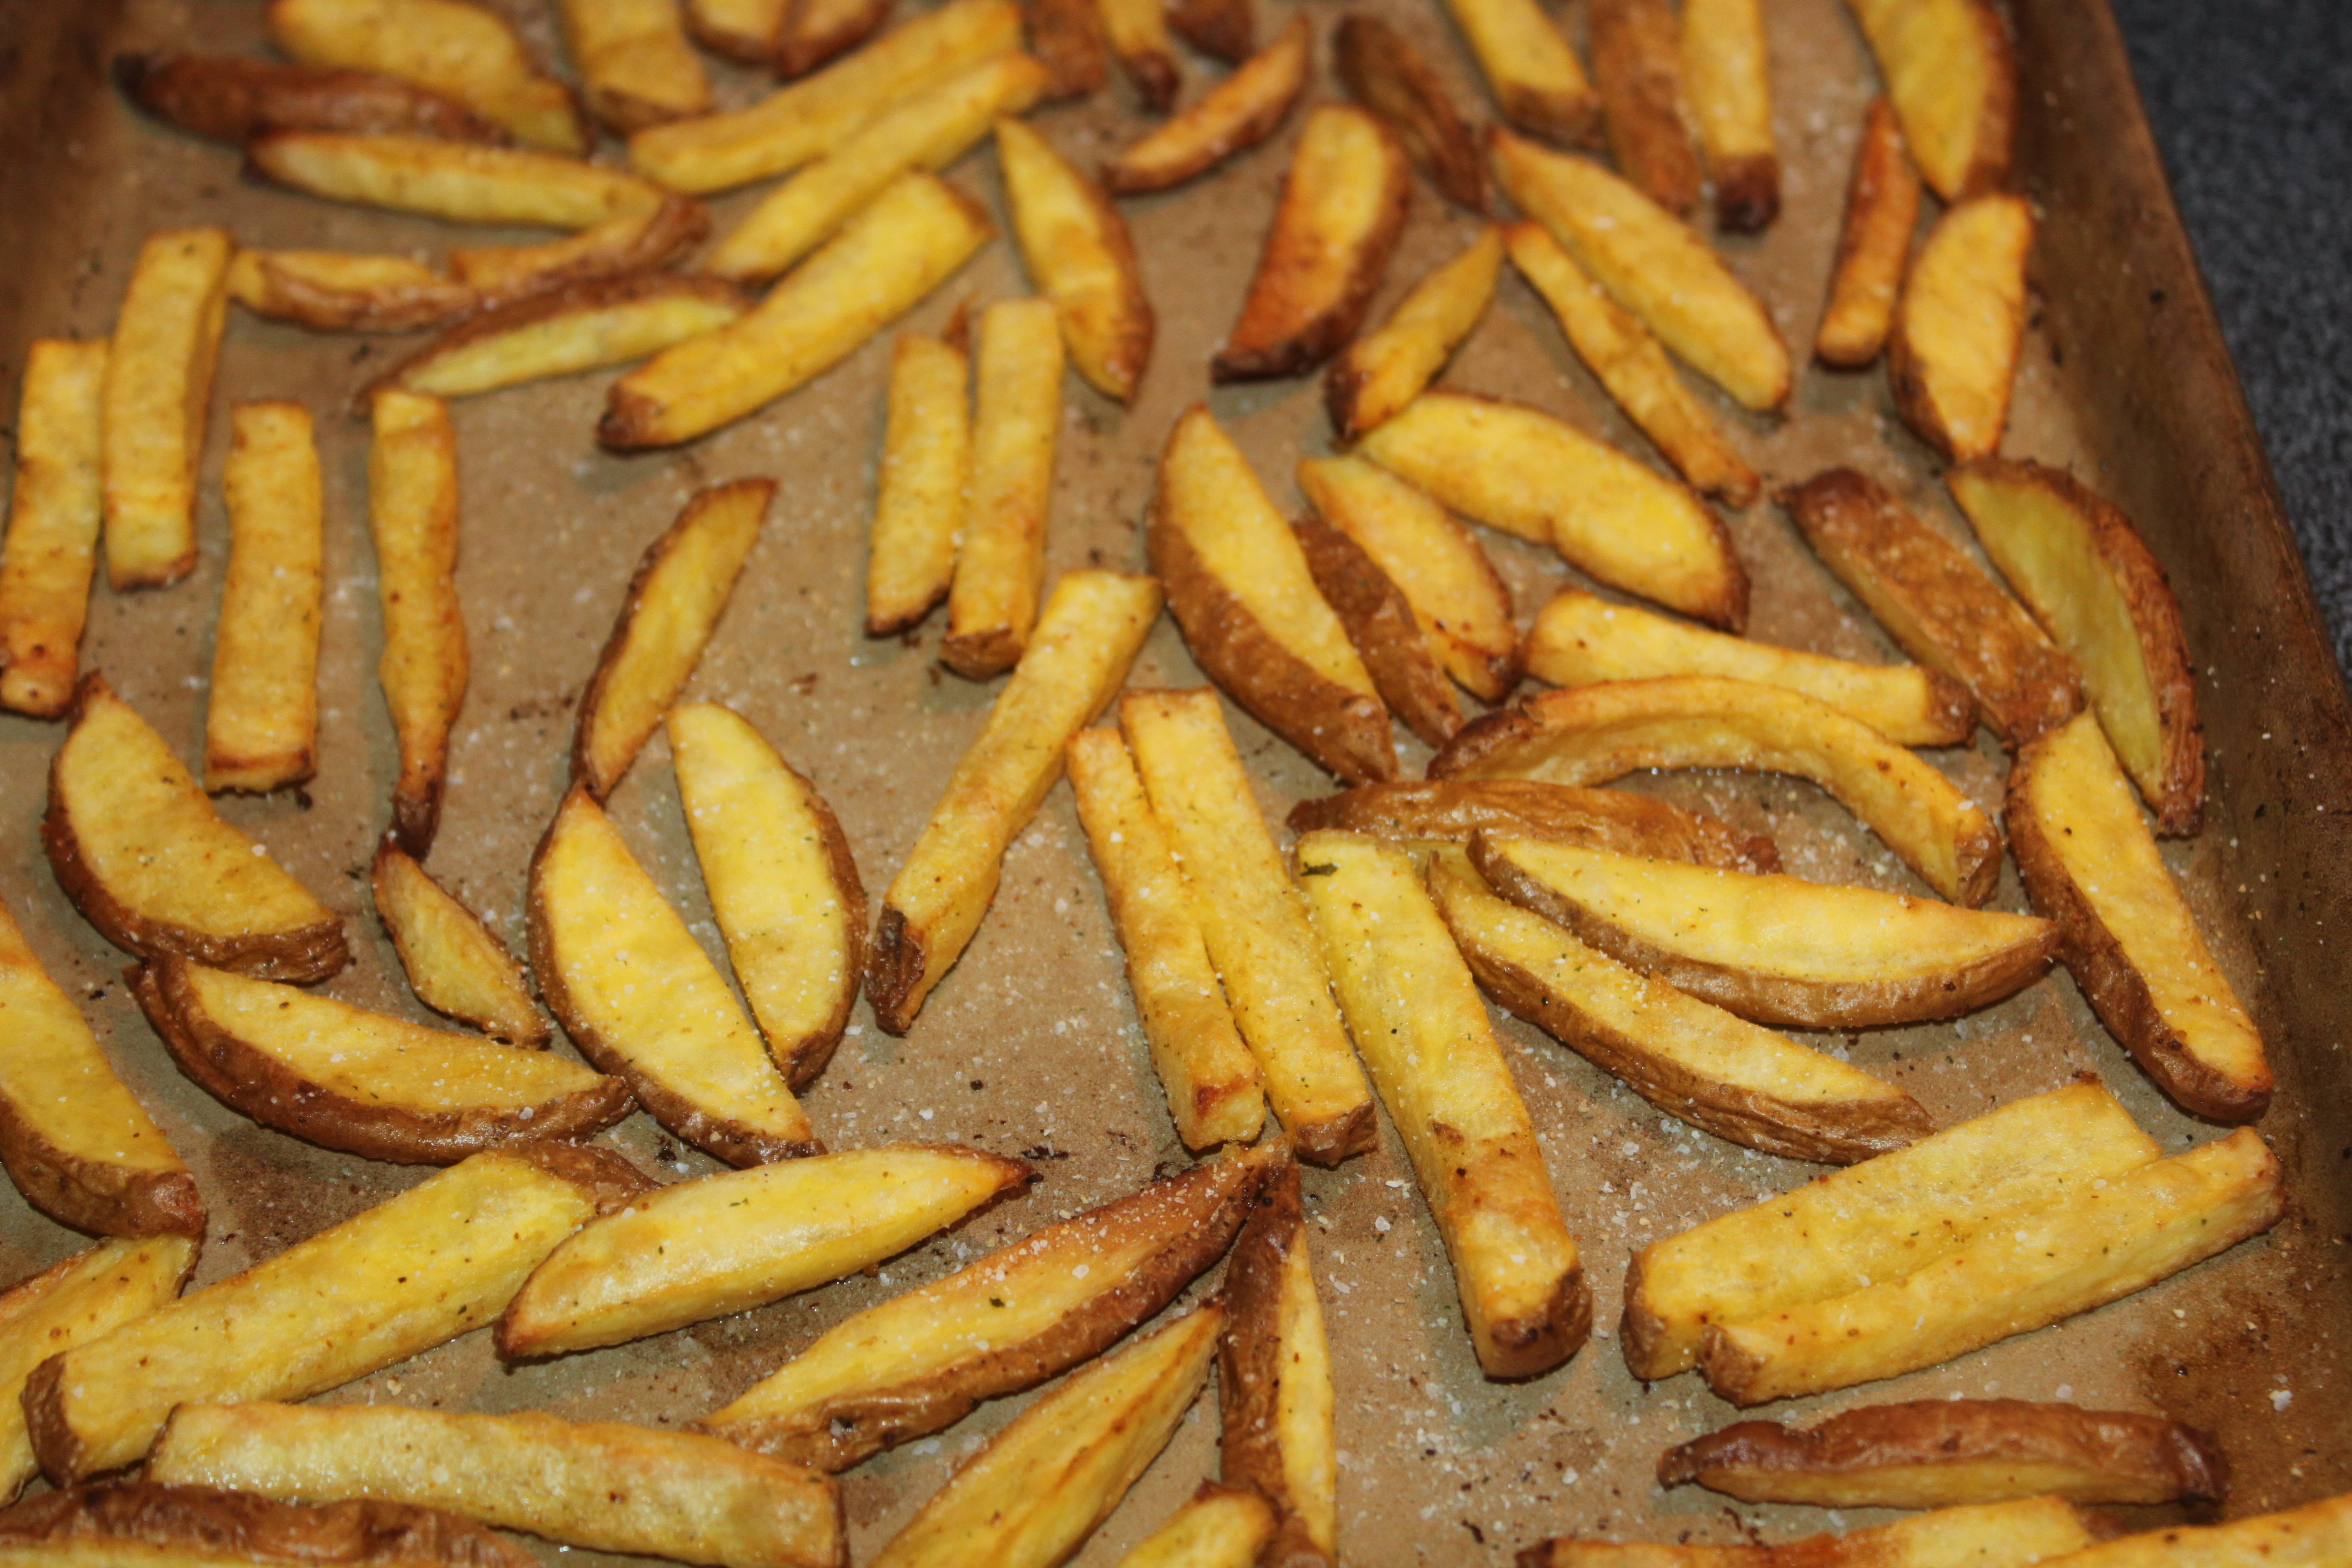 Oven: French Fries In The Oven